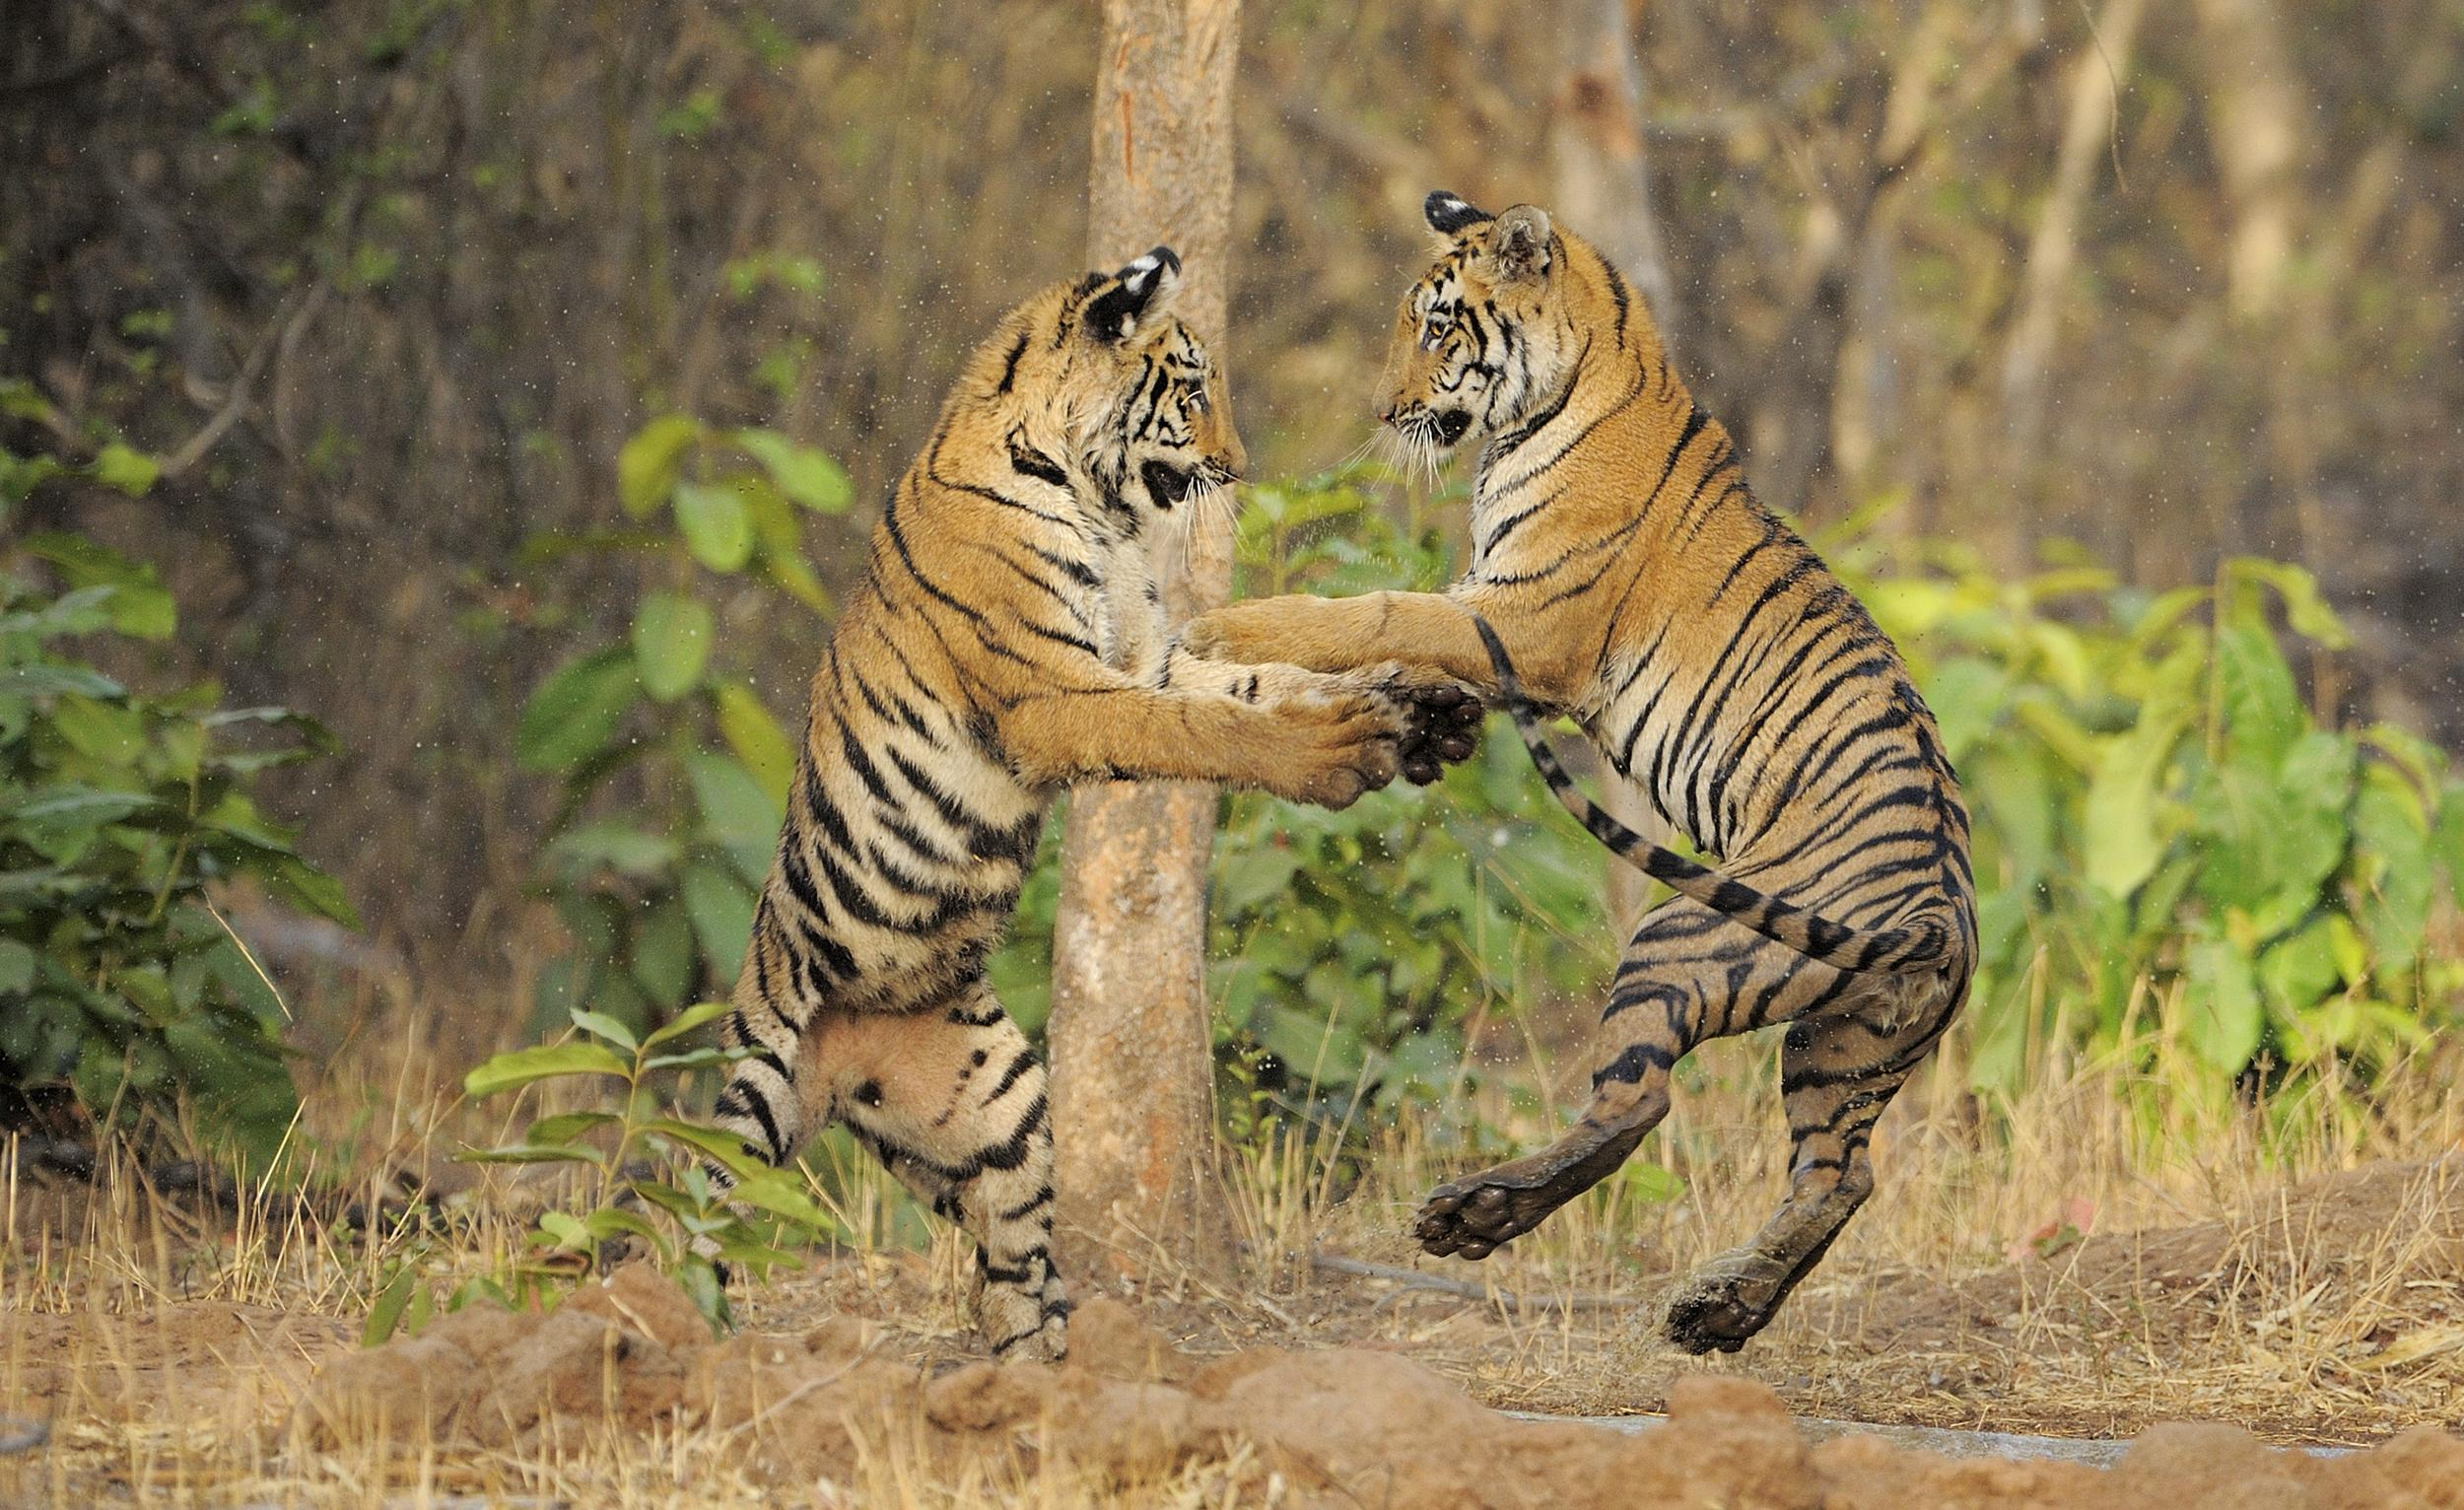 Tigers jumping and playing